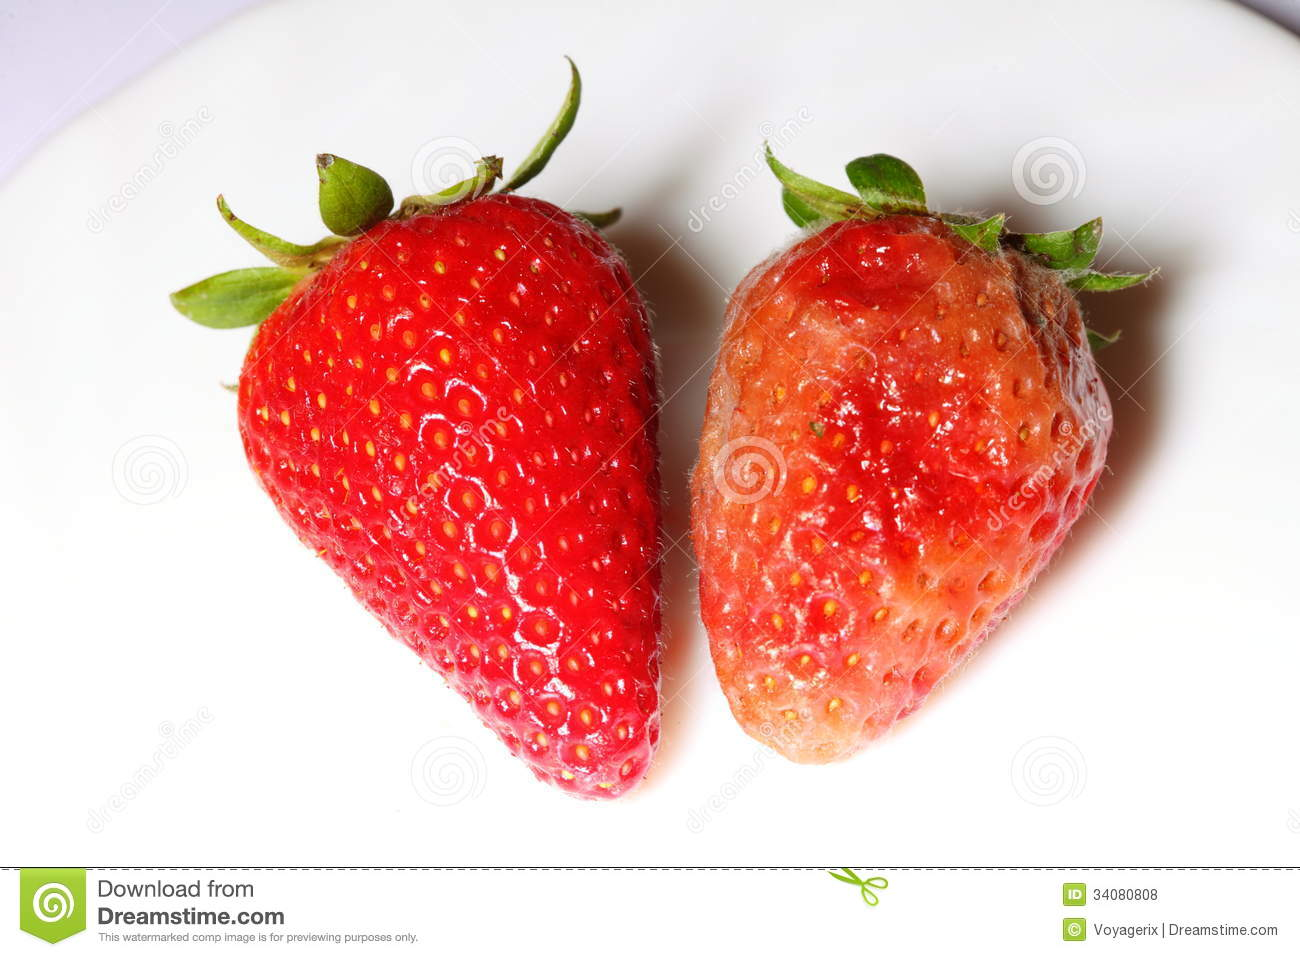 Rotten Strawberries Healthy And Rotten Spo...